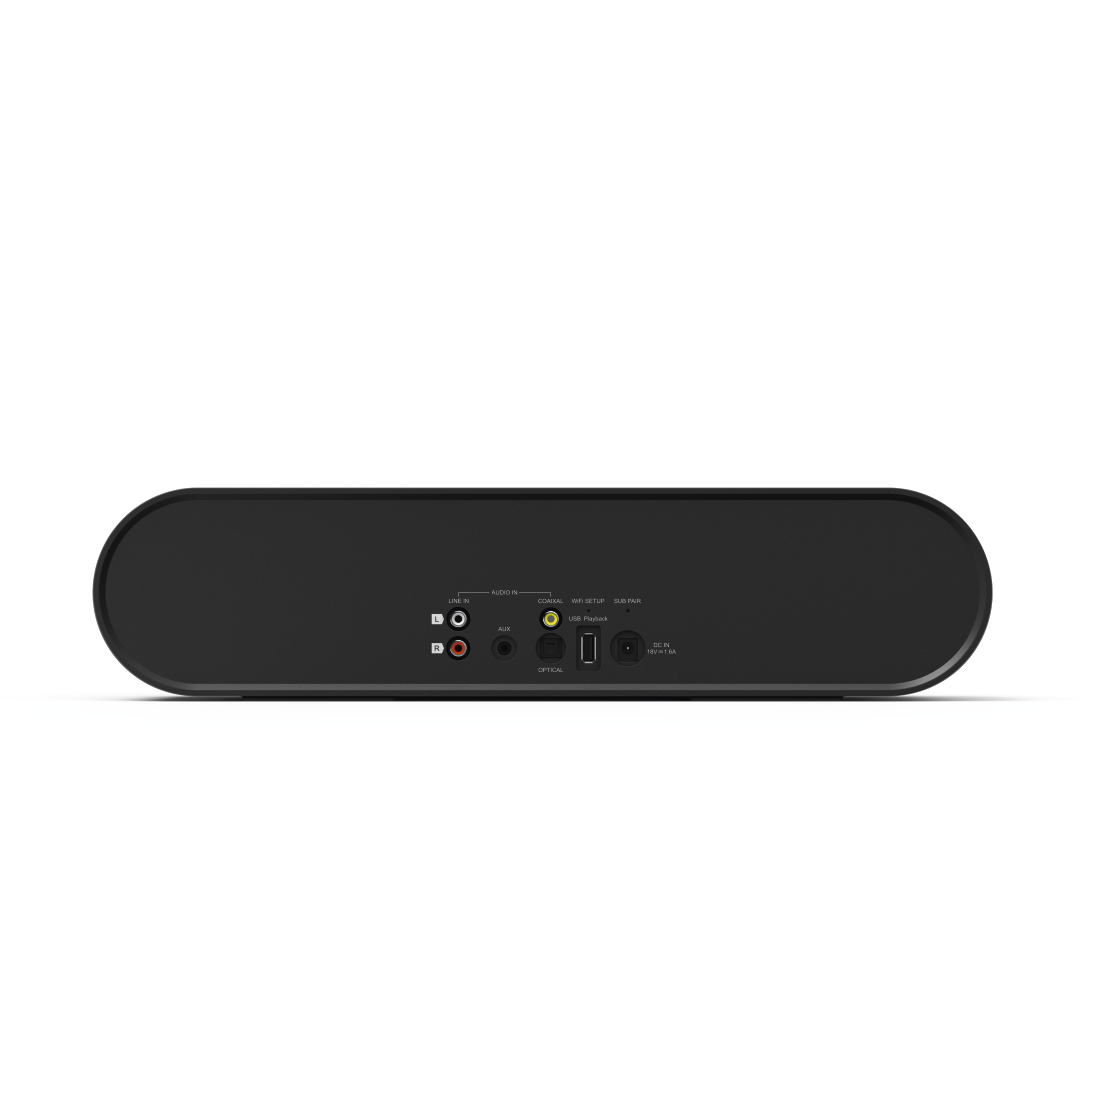 abx2 Druckfähige Abbildung 2 - Hama, Smart-Slim-Soundbar 2.1 SIRIUM3800ABT, Wireless Subwoofer/Alexa/Bluetooth